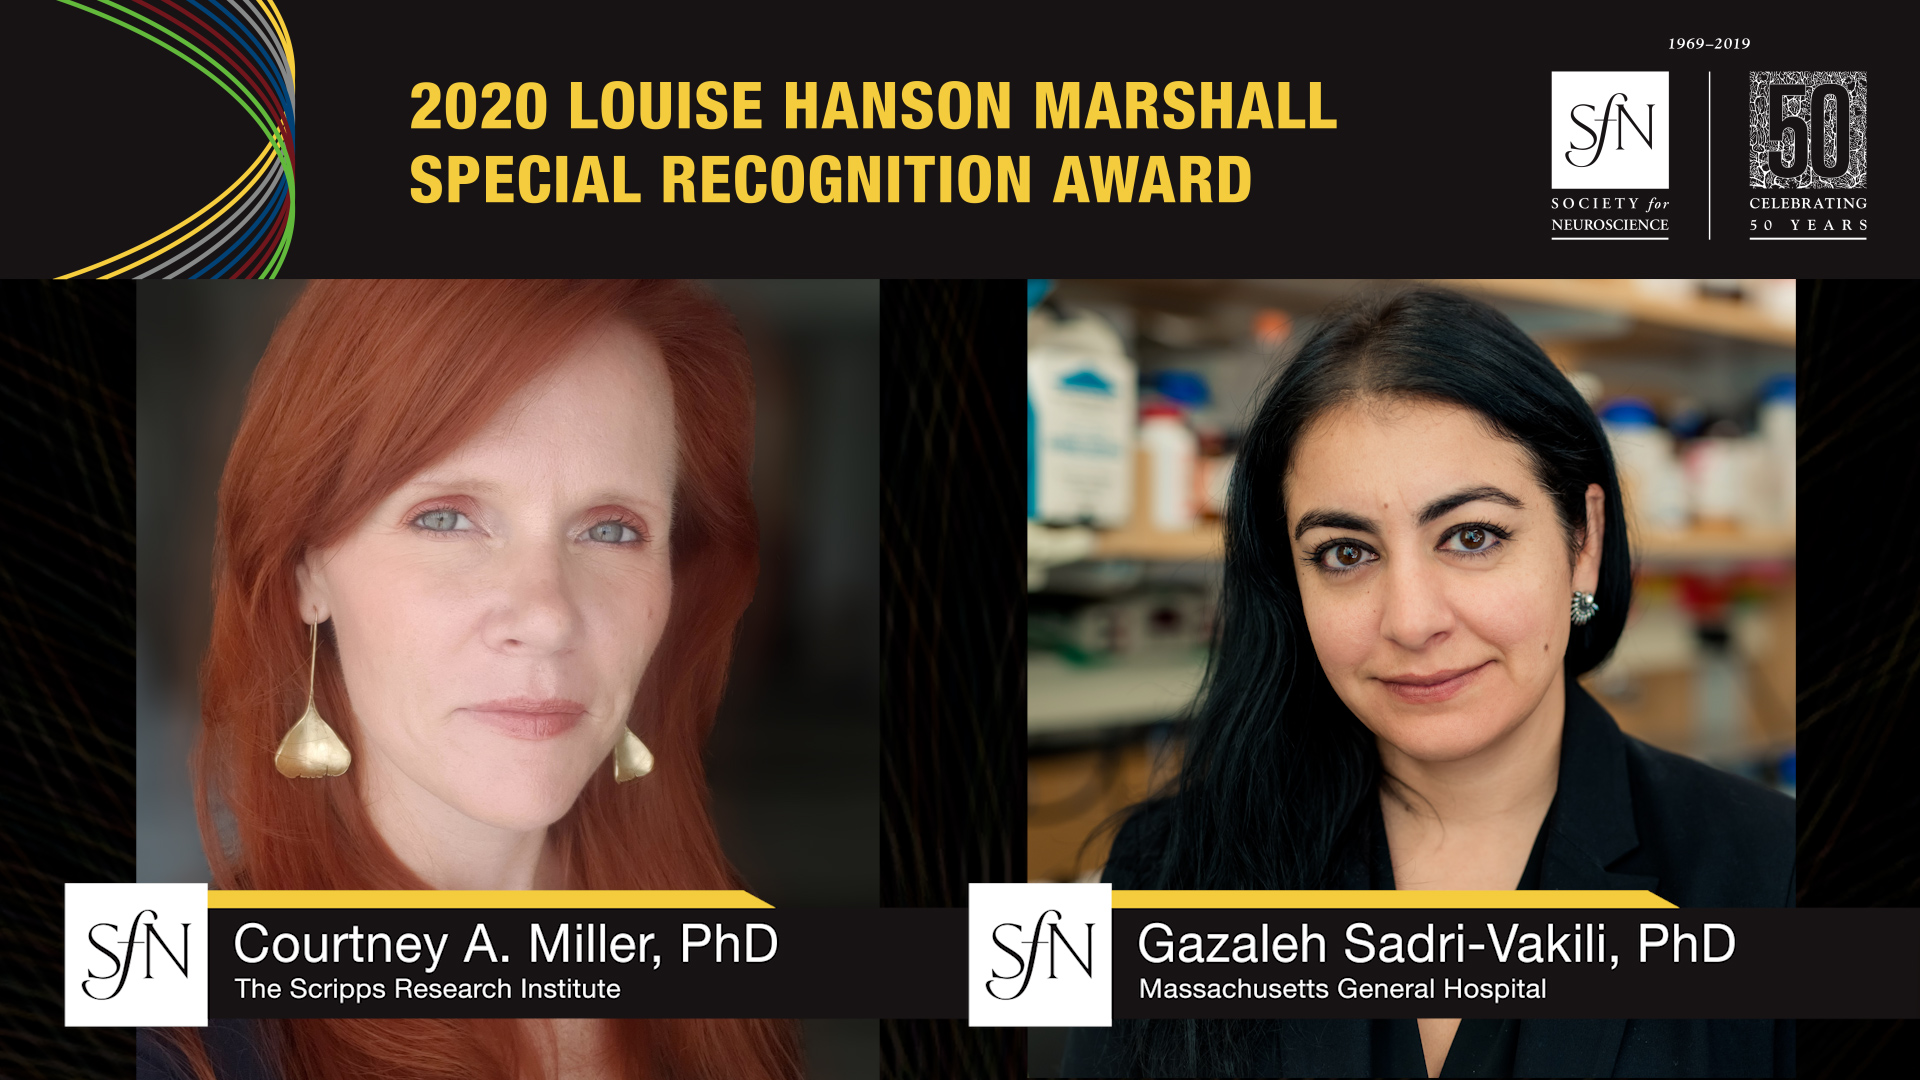 2020 Louise Hanson Marshall Special Recognition Award winners graphic, images of Courtney A. Miller, PhD The Scripps Research Institute and Gazaleh Sadri-Vakili, PhD Massachusetts General Hospital